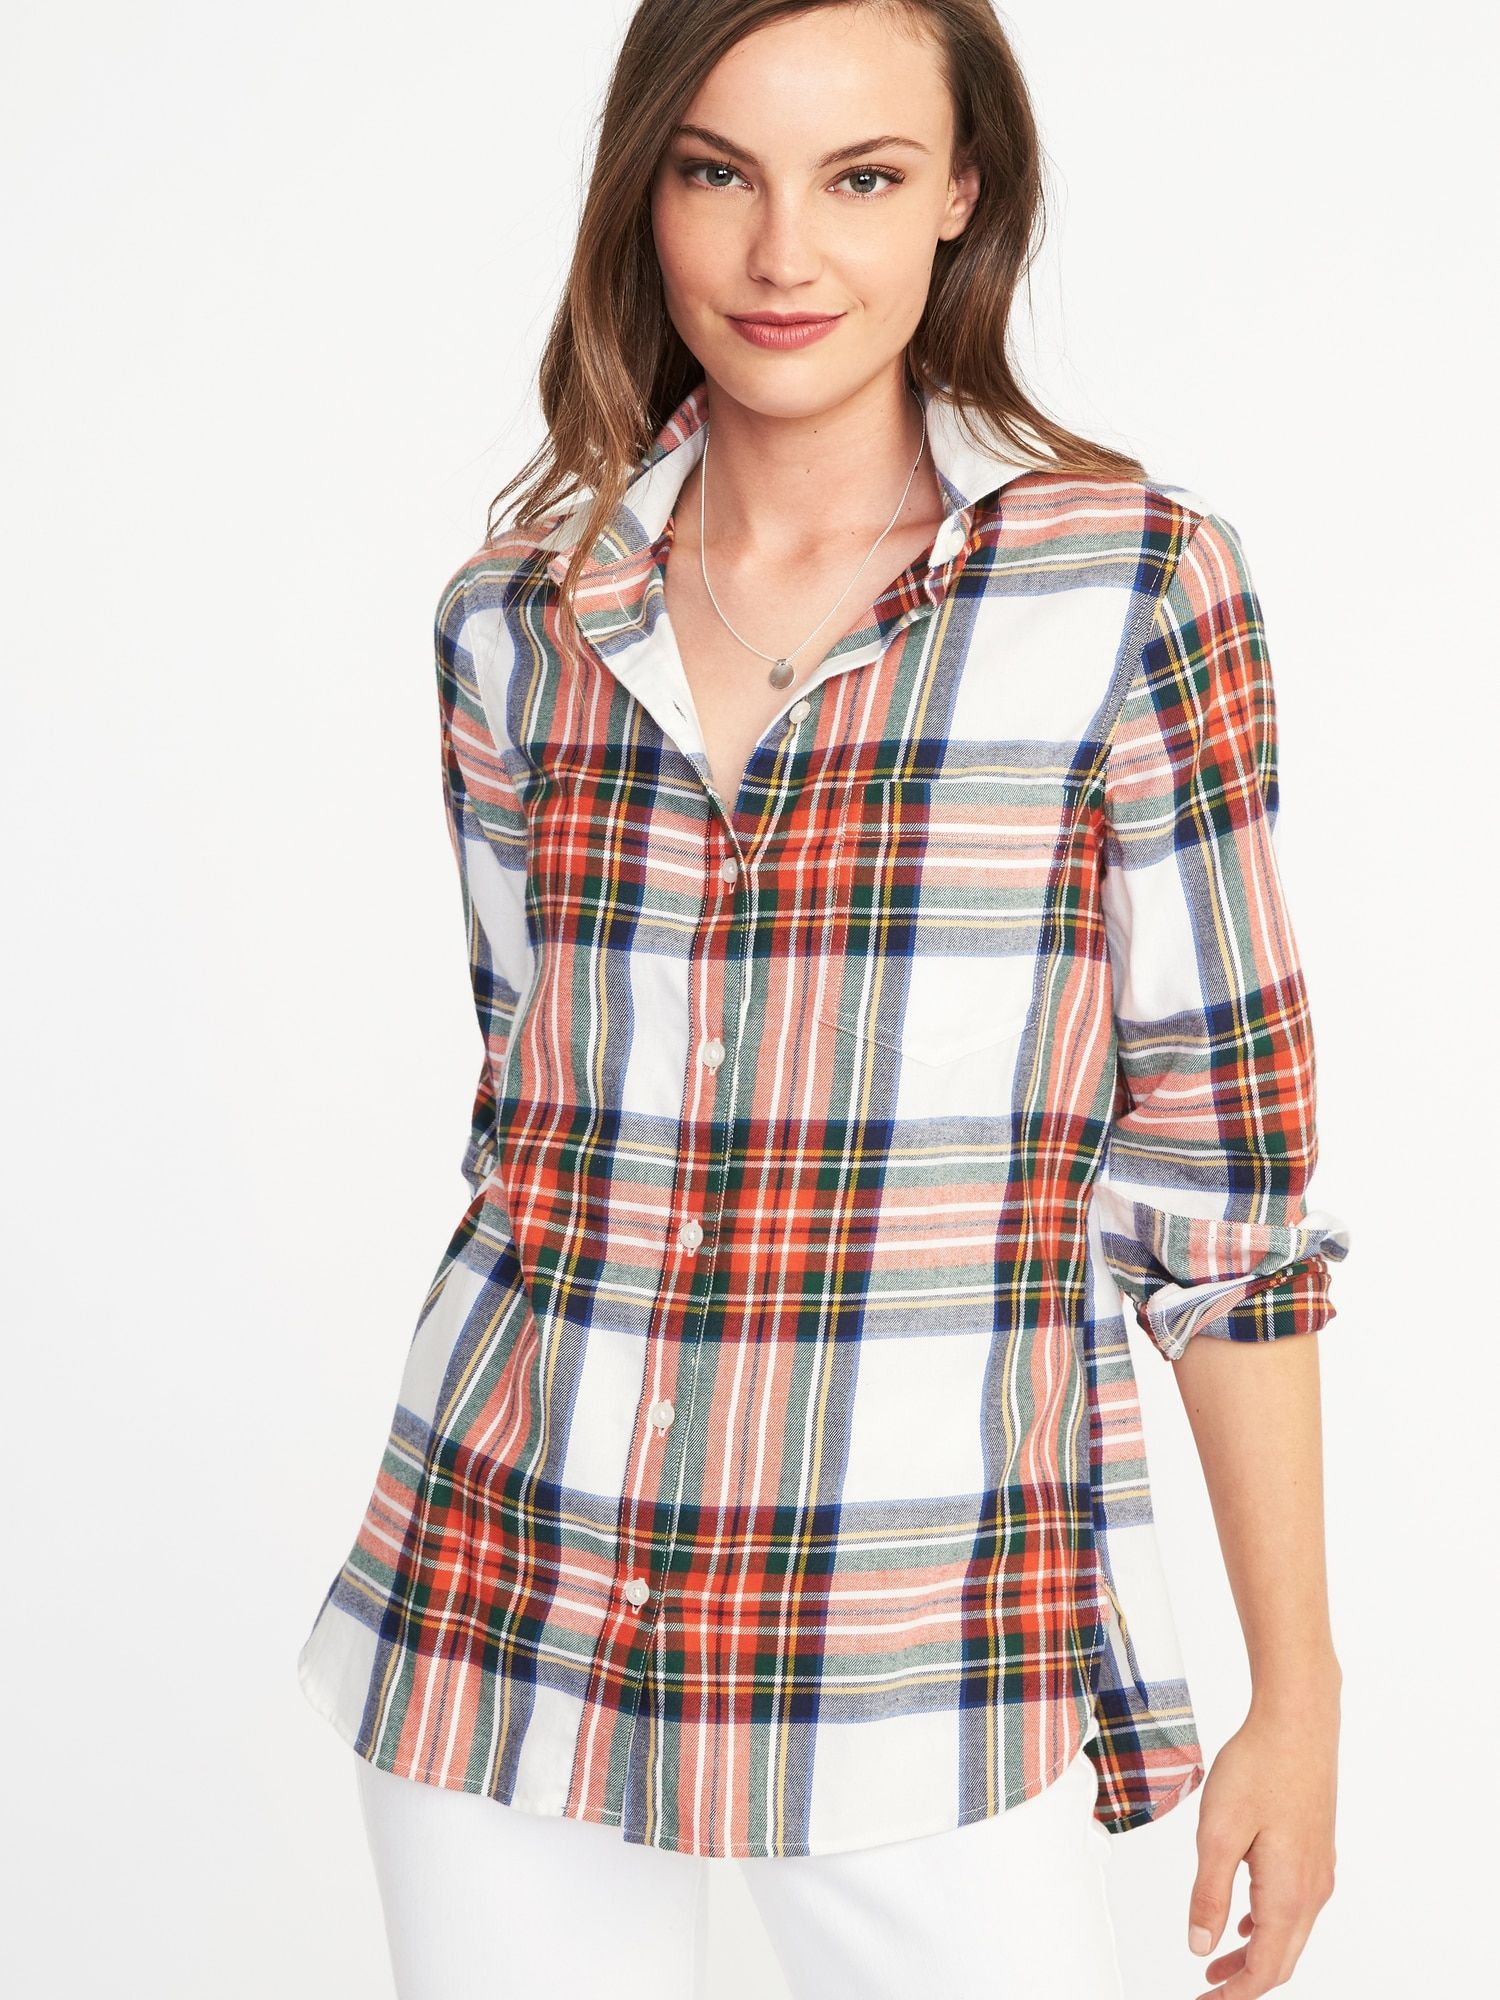 64523305966b73 Classic Flannel Shirt for Women